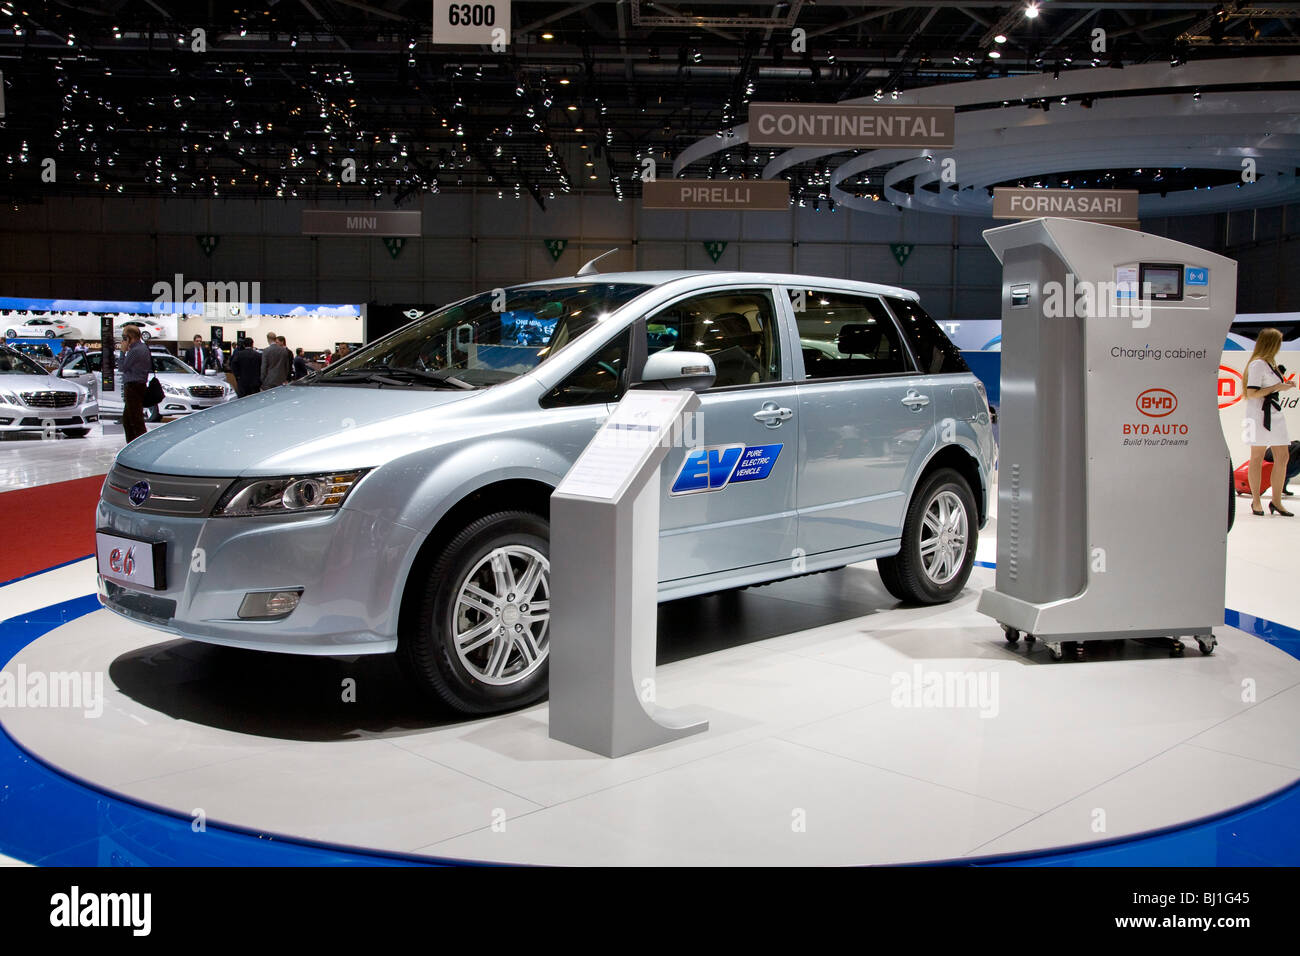 BYD Electric Vehicle at a motor show - Stock Image